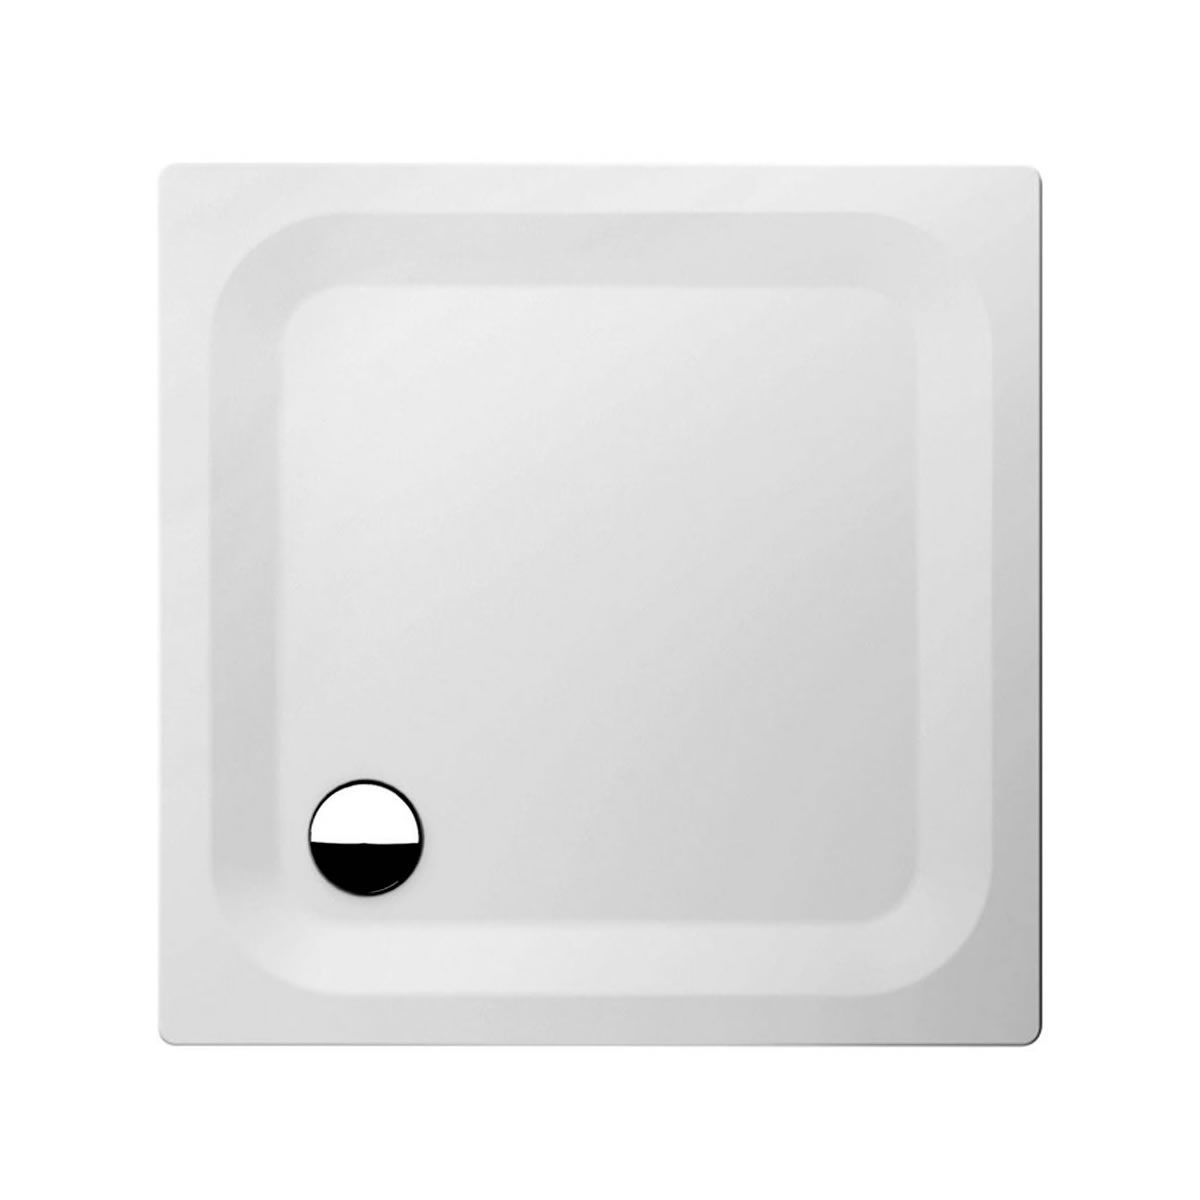 Bette Ultra 25mm Square Steel Shower Tray Uk Bathrooms